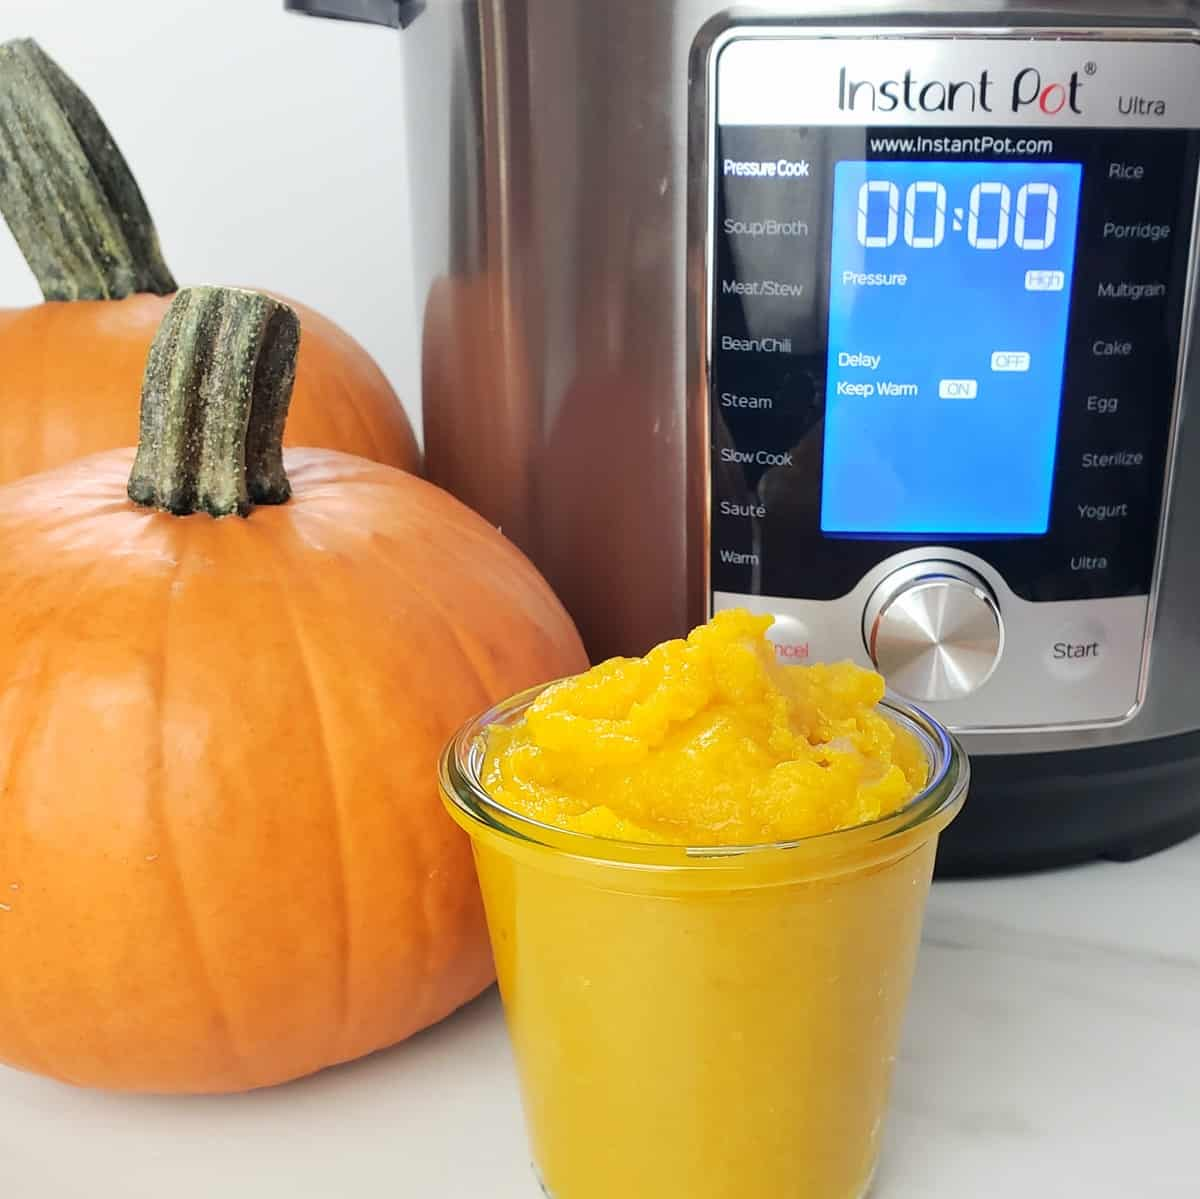 pumpkin beside an Instant Pot